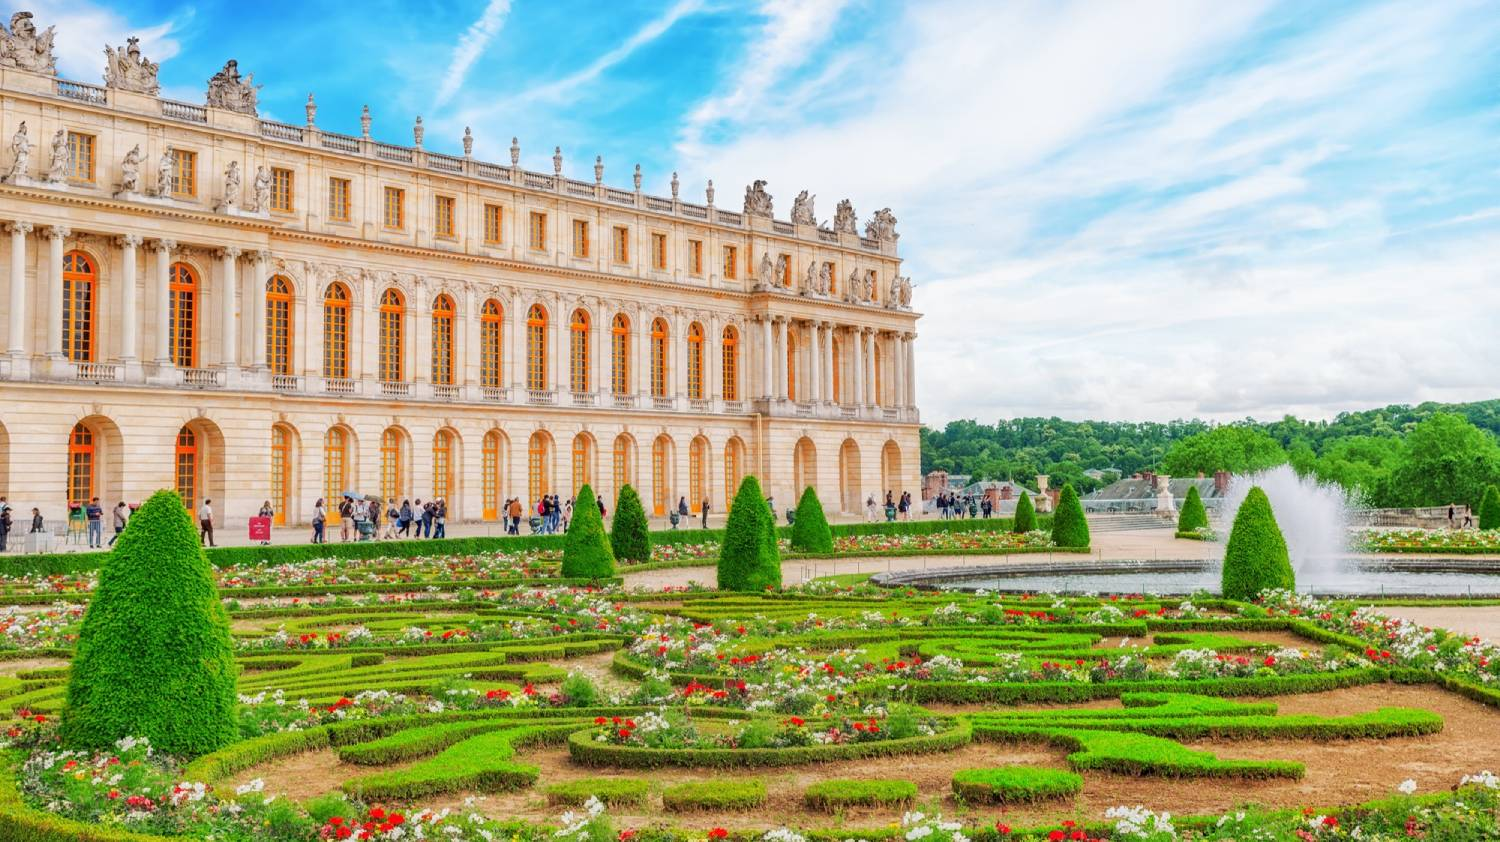 Palace of Versailles - Things To Do In Paris